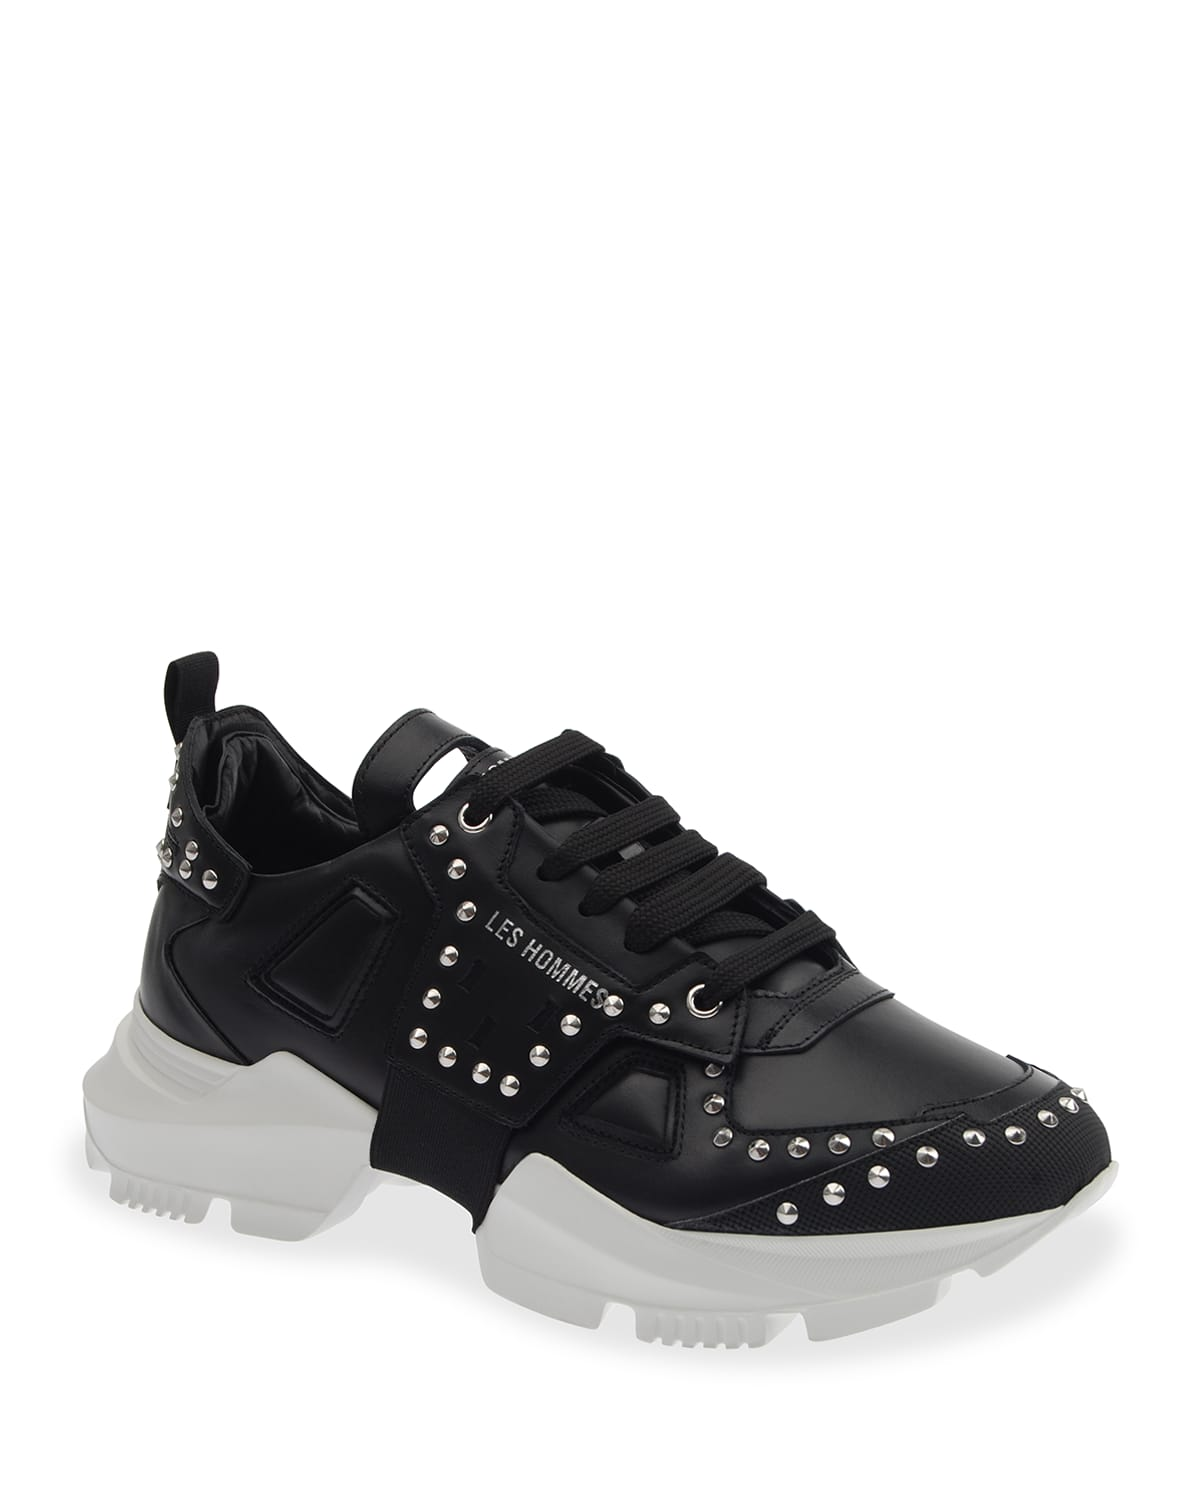 Men's Studded Leather Chunky Low-Top Sneakers